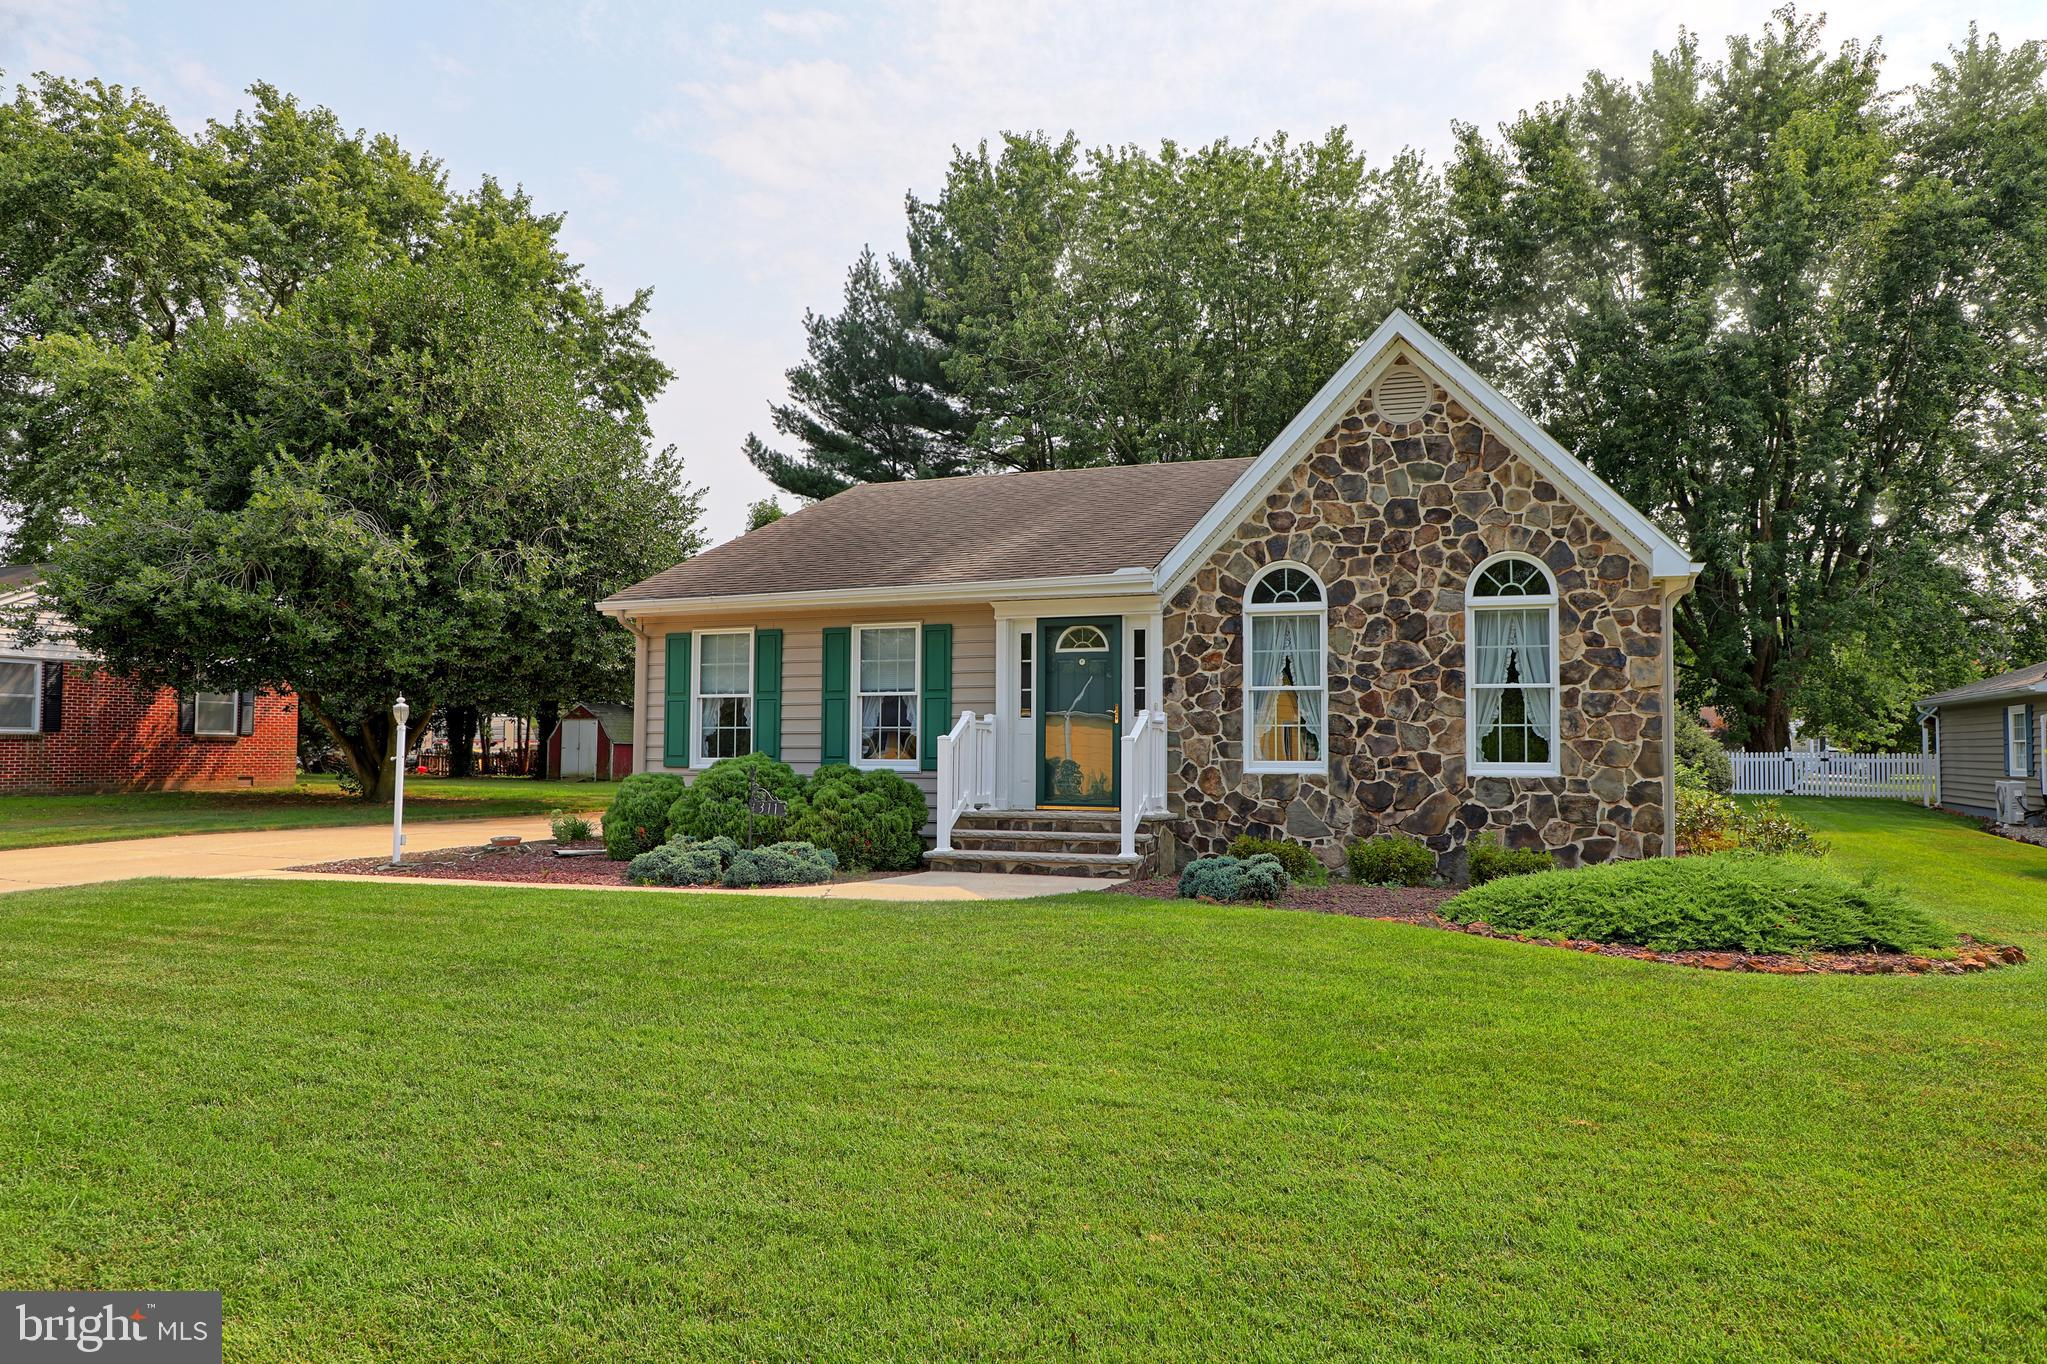 Situated on a spacious lot in the town limits of historic Georgetown, this charming 2 bedroom 2 bath